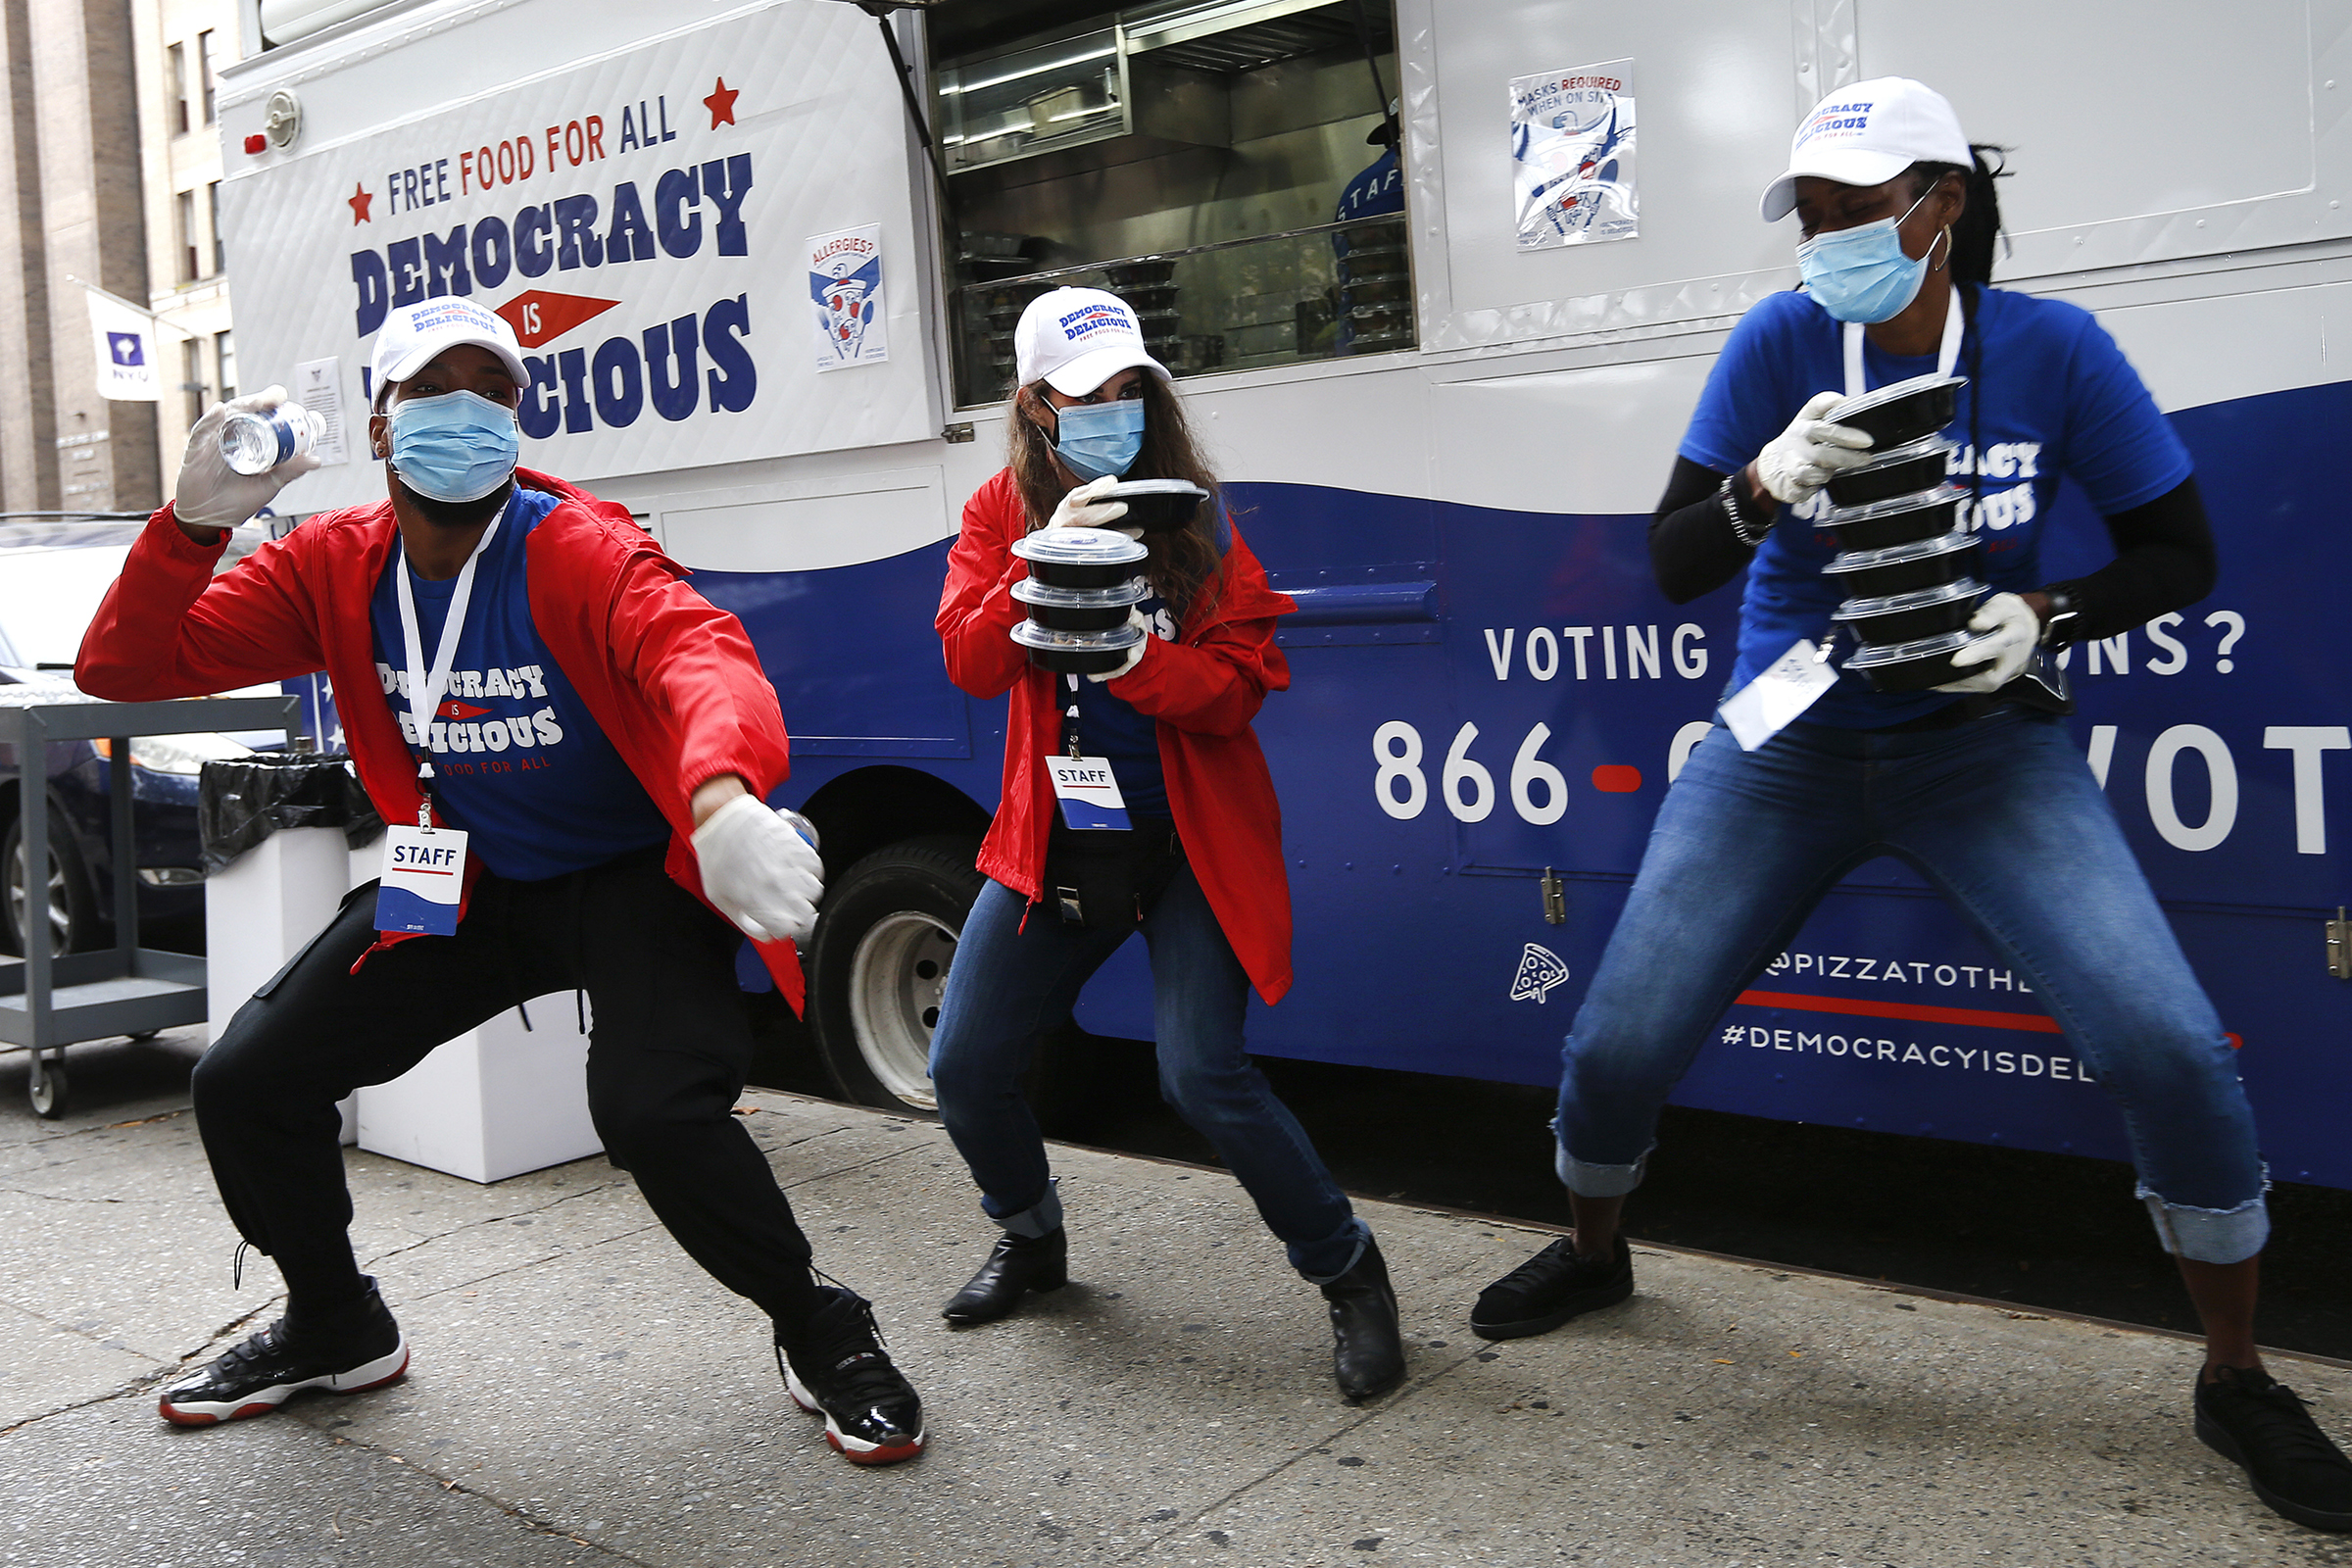 Pizza to the Polls food truck staff dance and spread good energy to voters waiting in line on early voting day in New York, on Oct. 24, 2020.